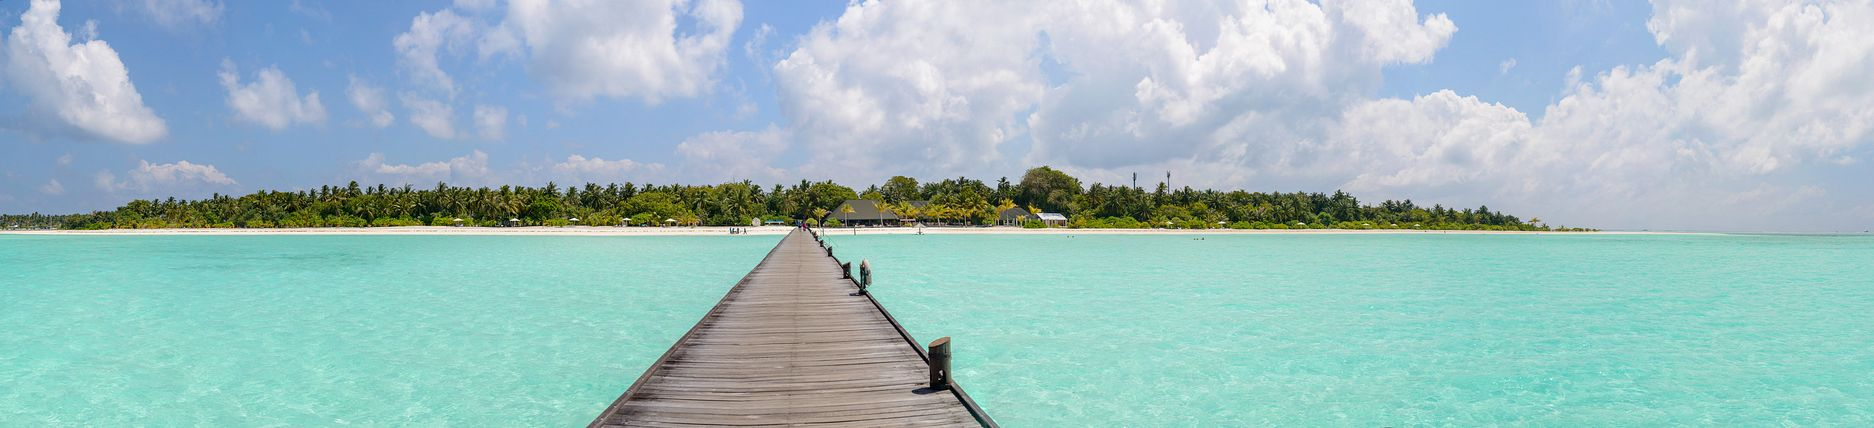 Panorama of Holiday Island from jetty, Maldives